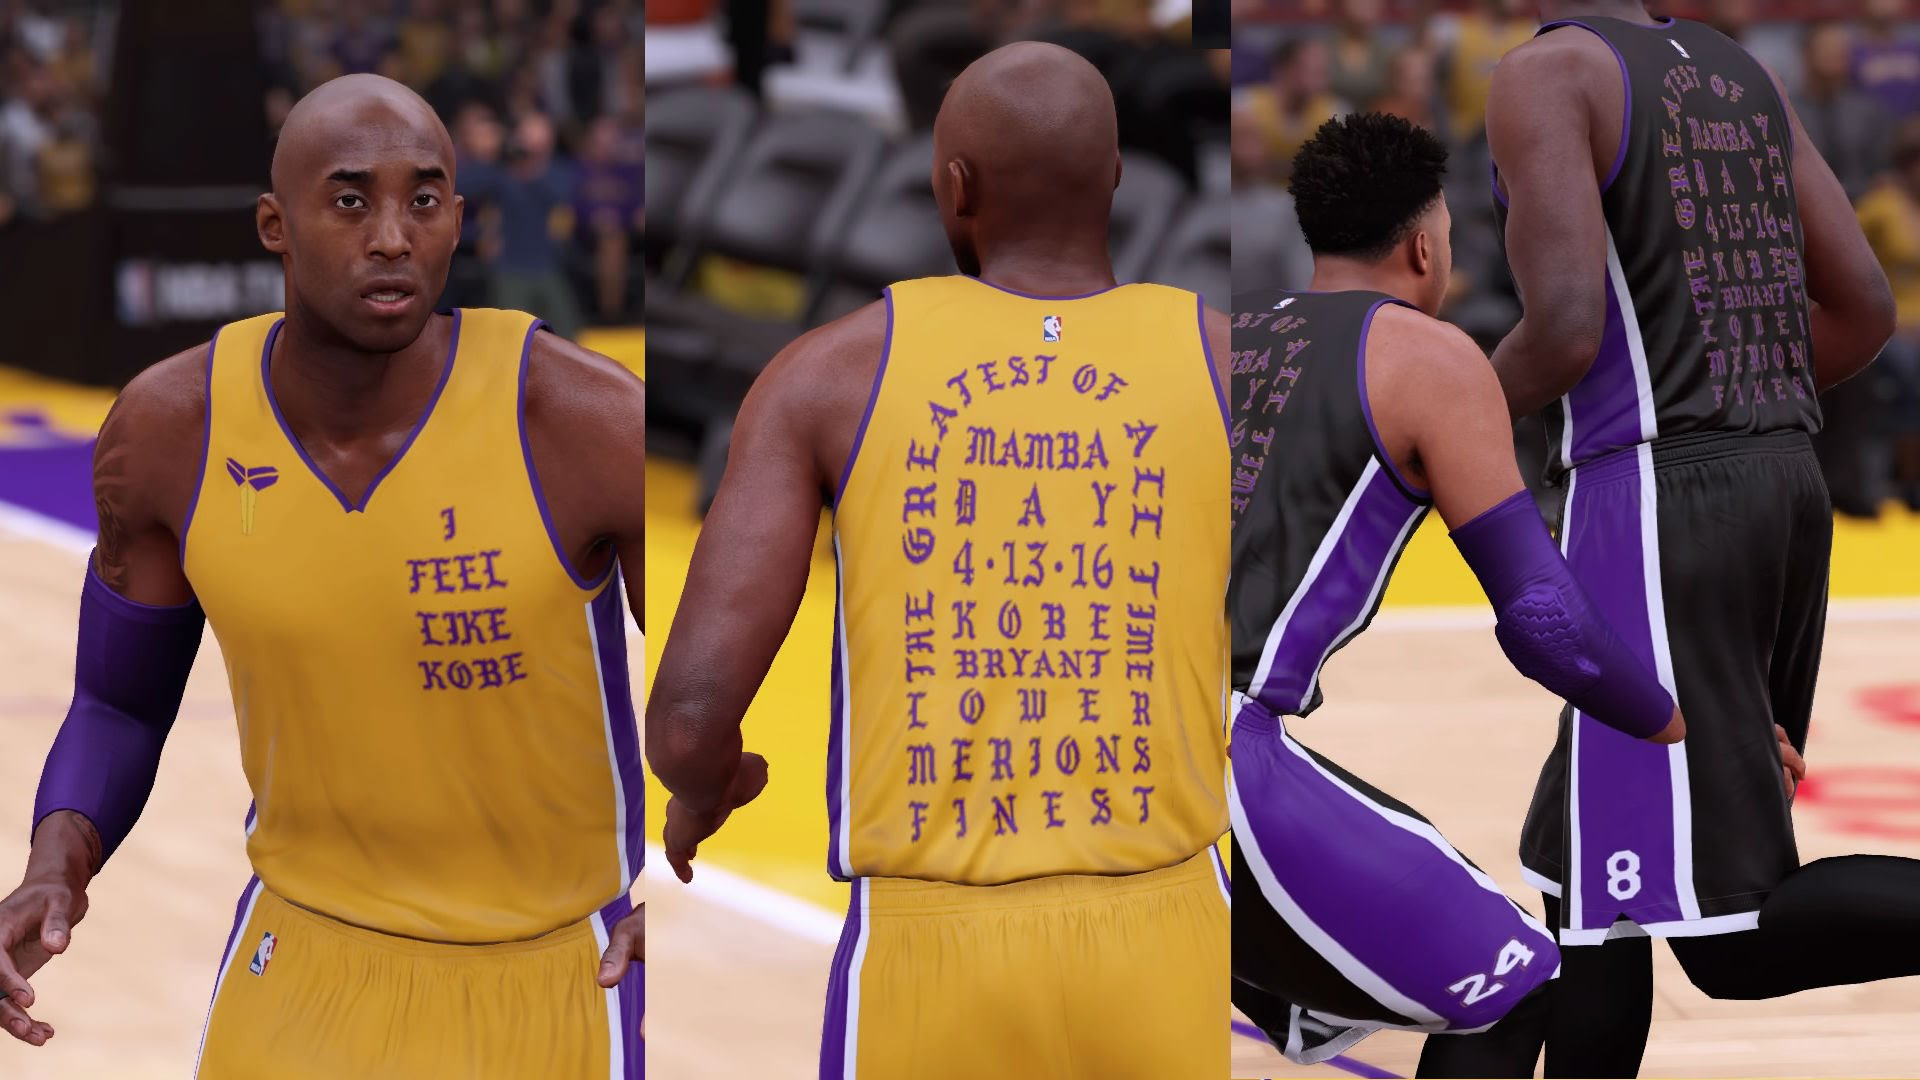 LA Lakers 'I Feel Like Kobe' Uniforms x NBA 2K16